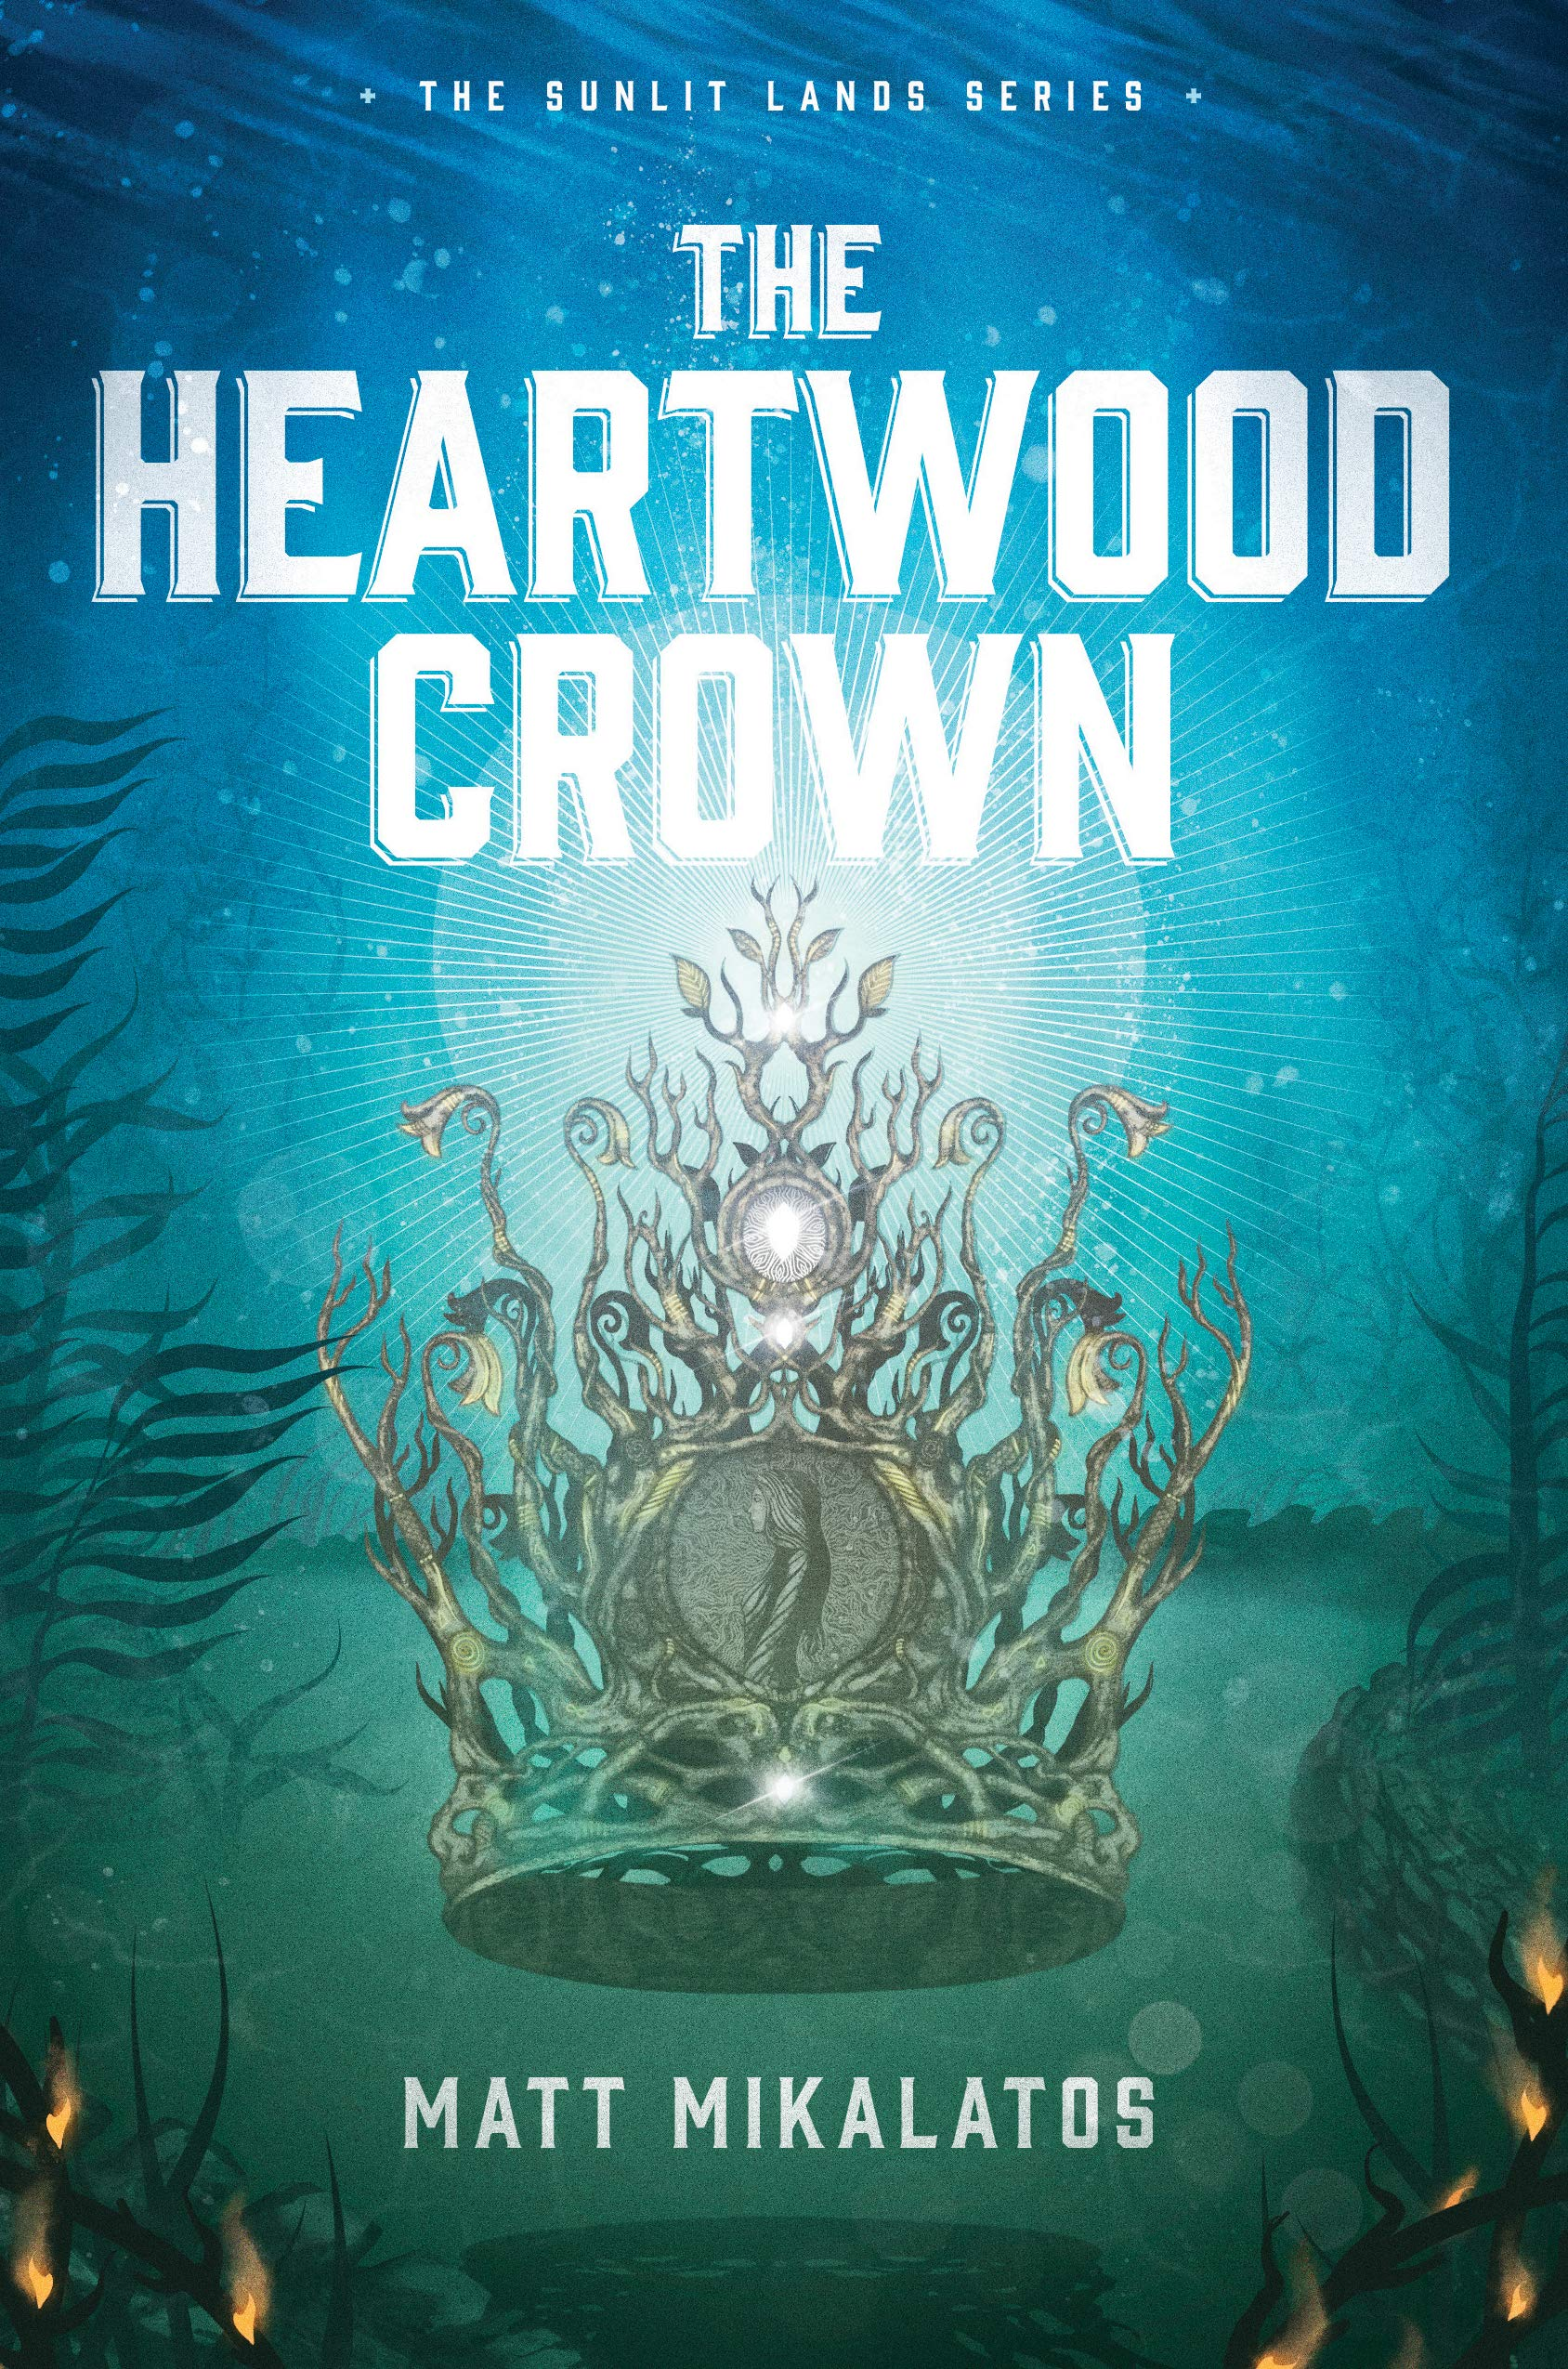 Title:  The Heartwood Crown (The Sunlit Lands #2) , Author: Matt Mikalatos, Publisher: Wander, Publish Date: August 6, 2019; Genres + Tags: YA, Young Adult, Fantasy, Epic, YA Epic Fantasy, Cover Art Love